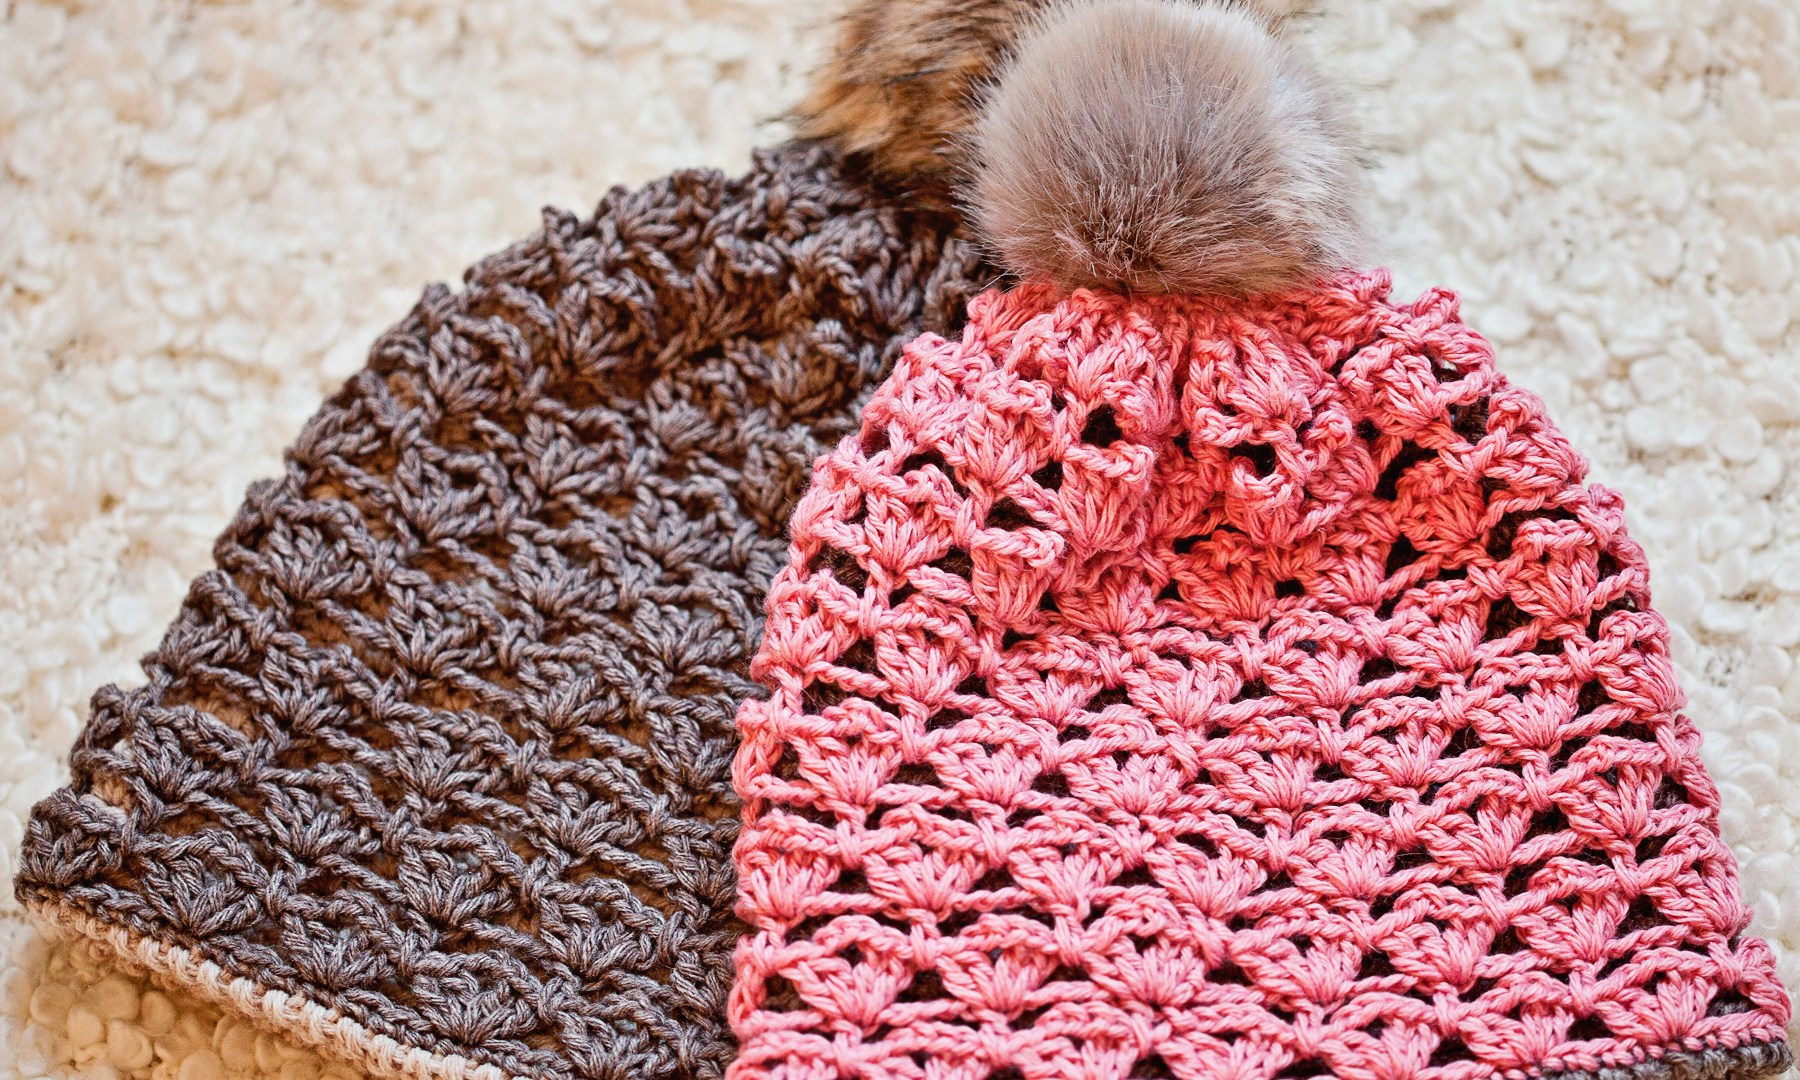 Don't feel cold ever again with our Double Layer Hat!